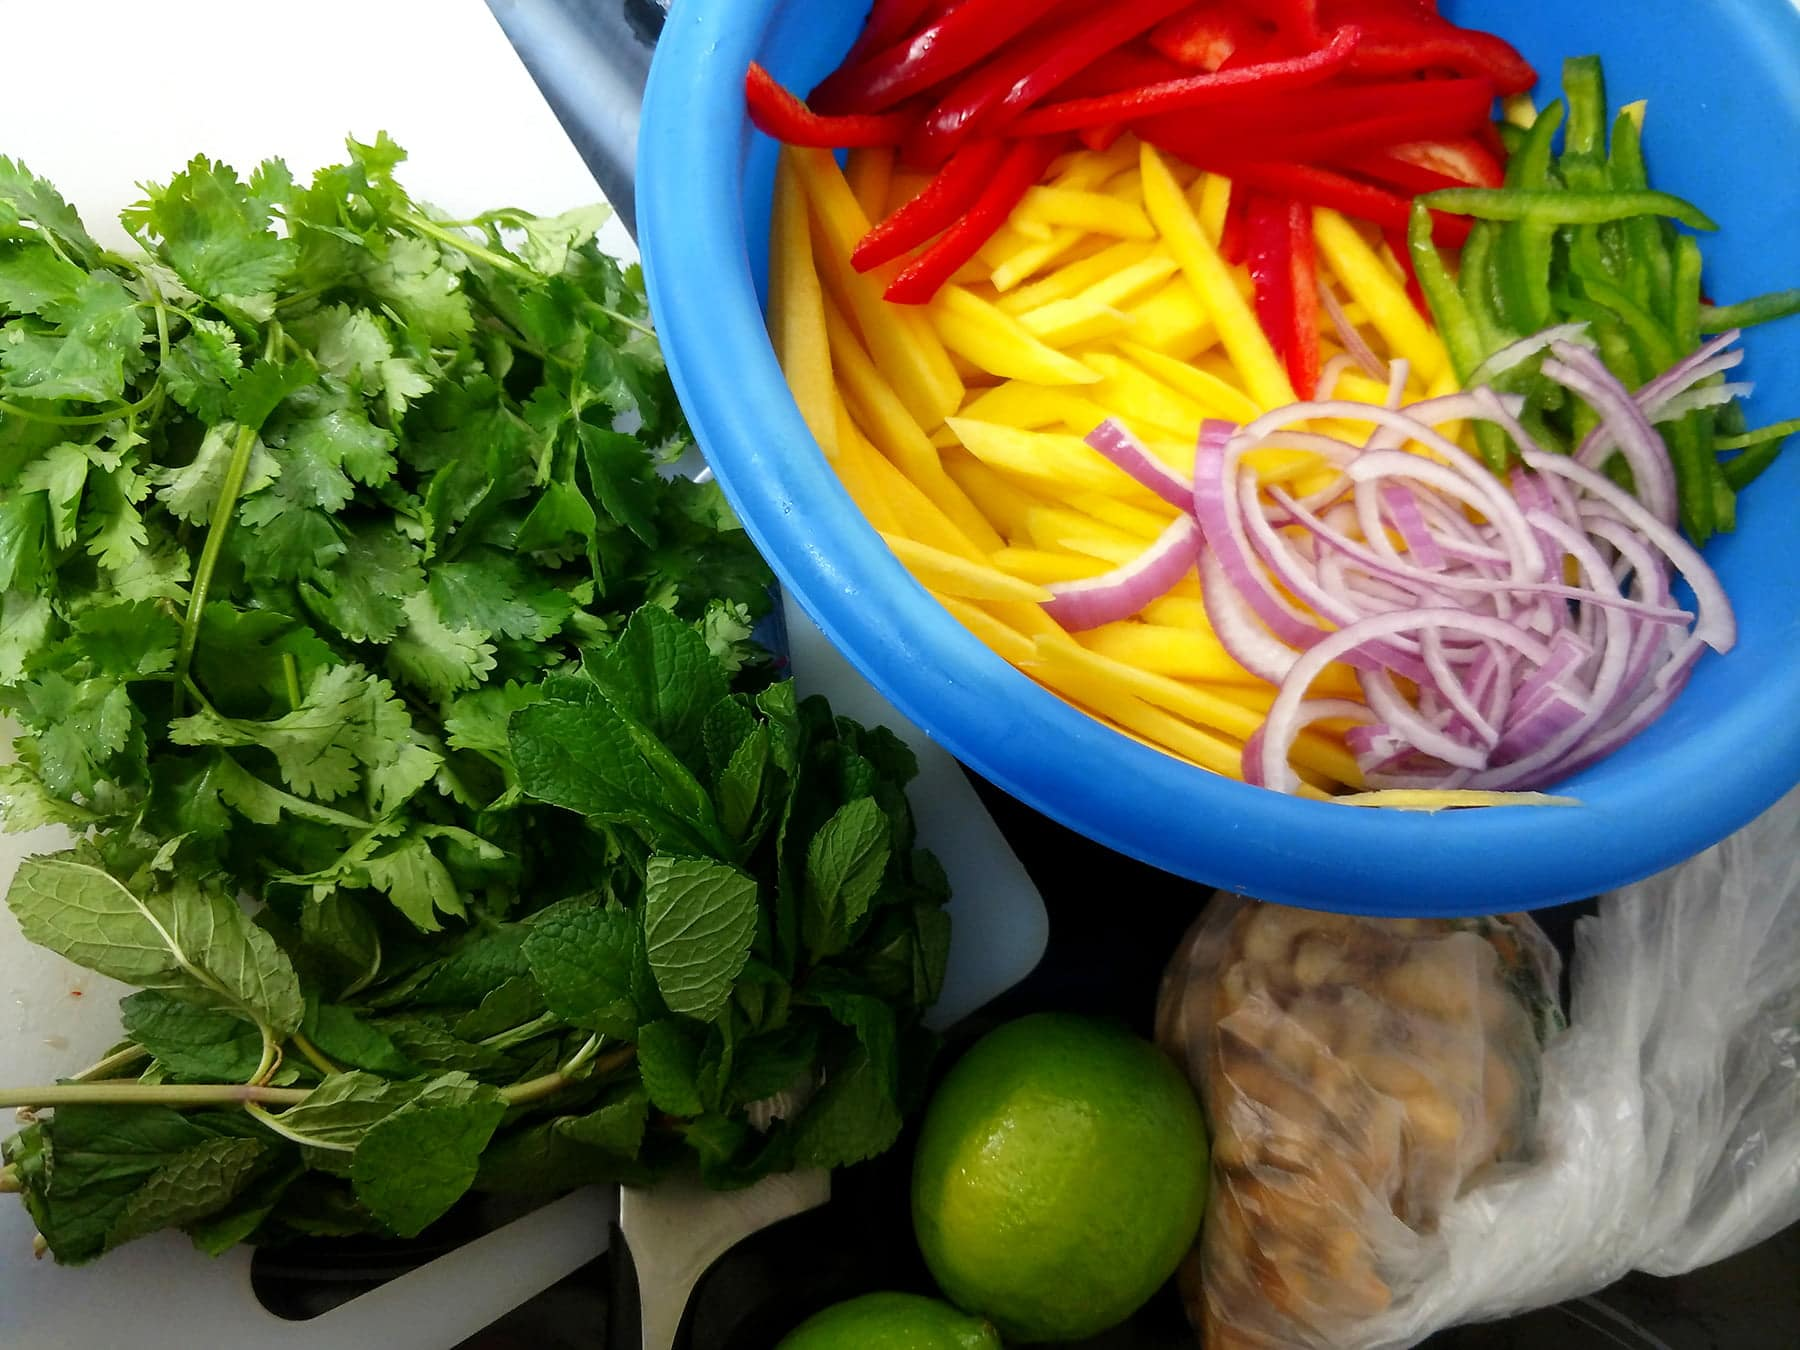 A blue mixing bowl holds slices of mango, red and green peppers, and red onions. Cilantro and mint is shown on a cutting board beside it.